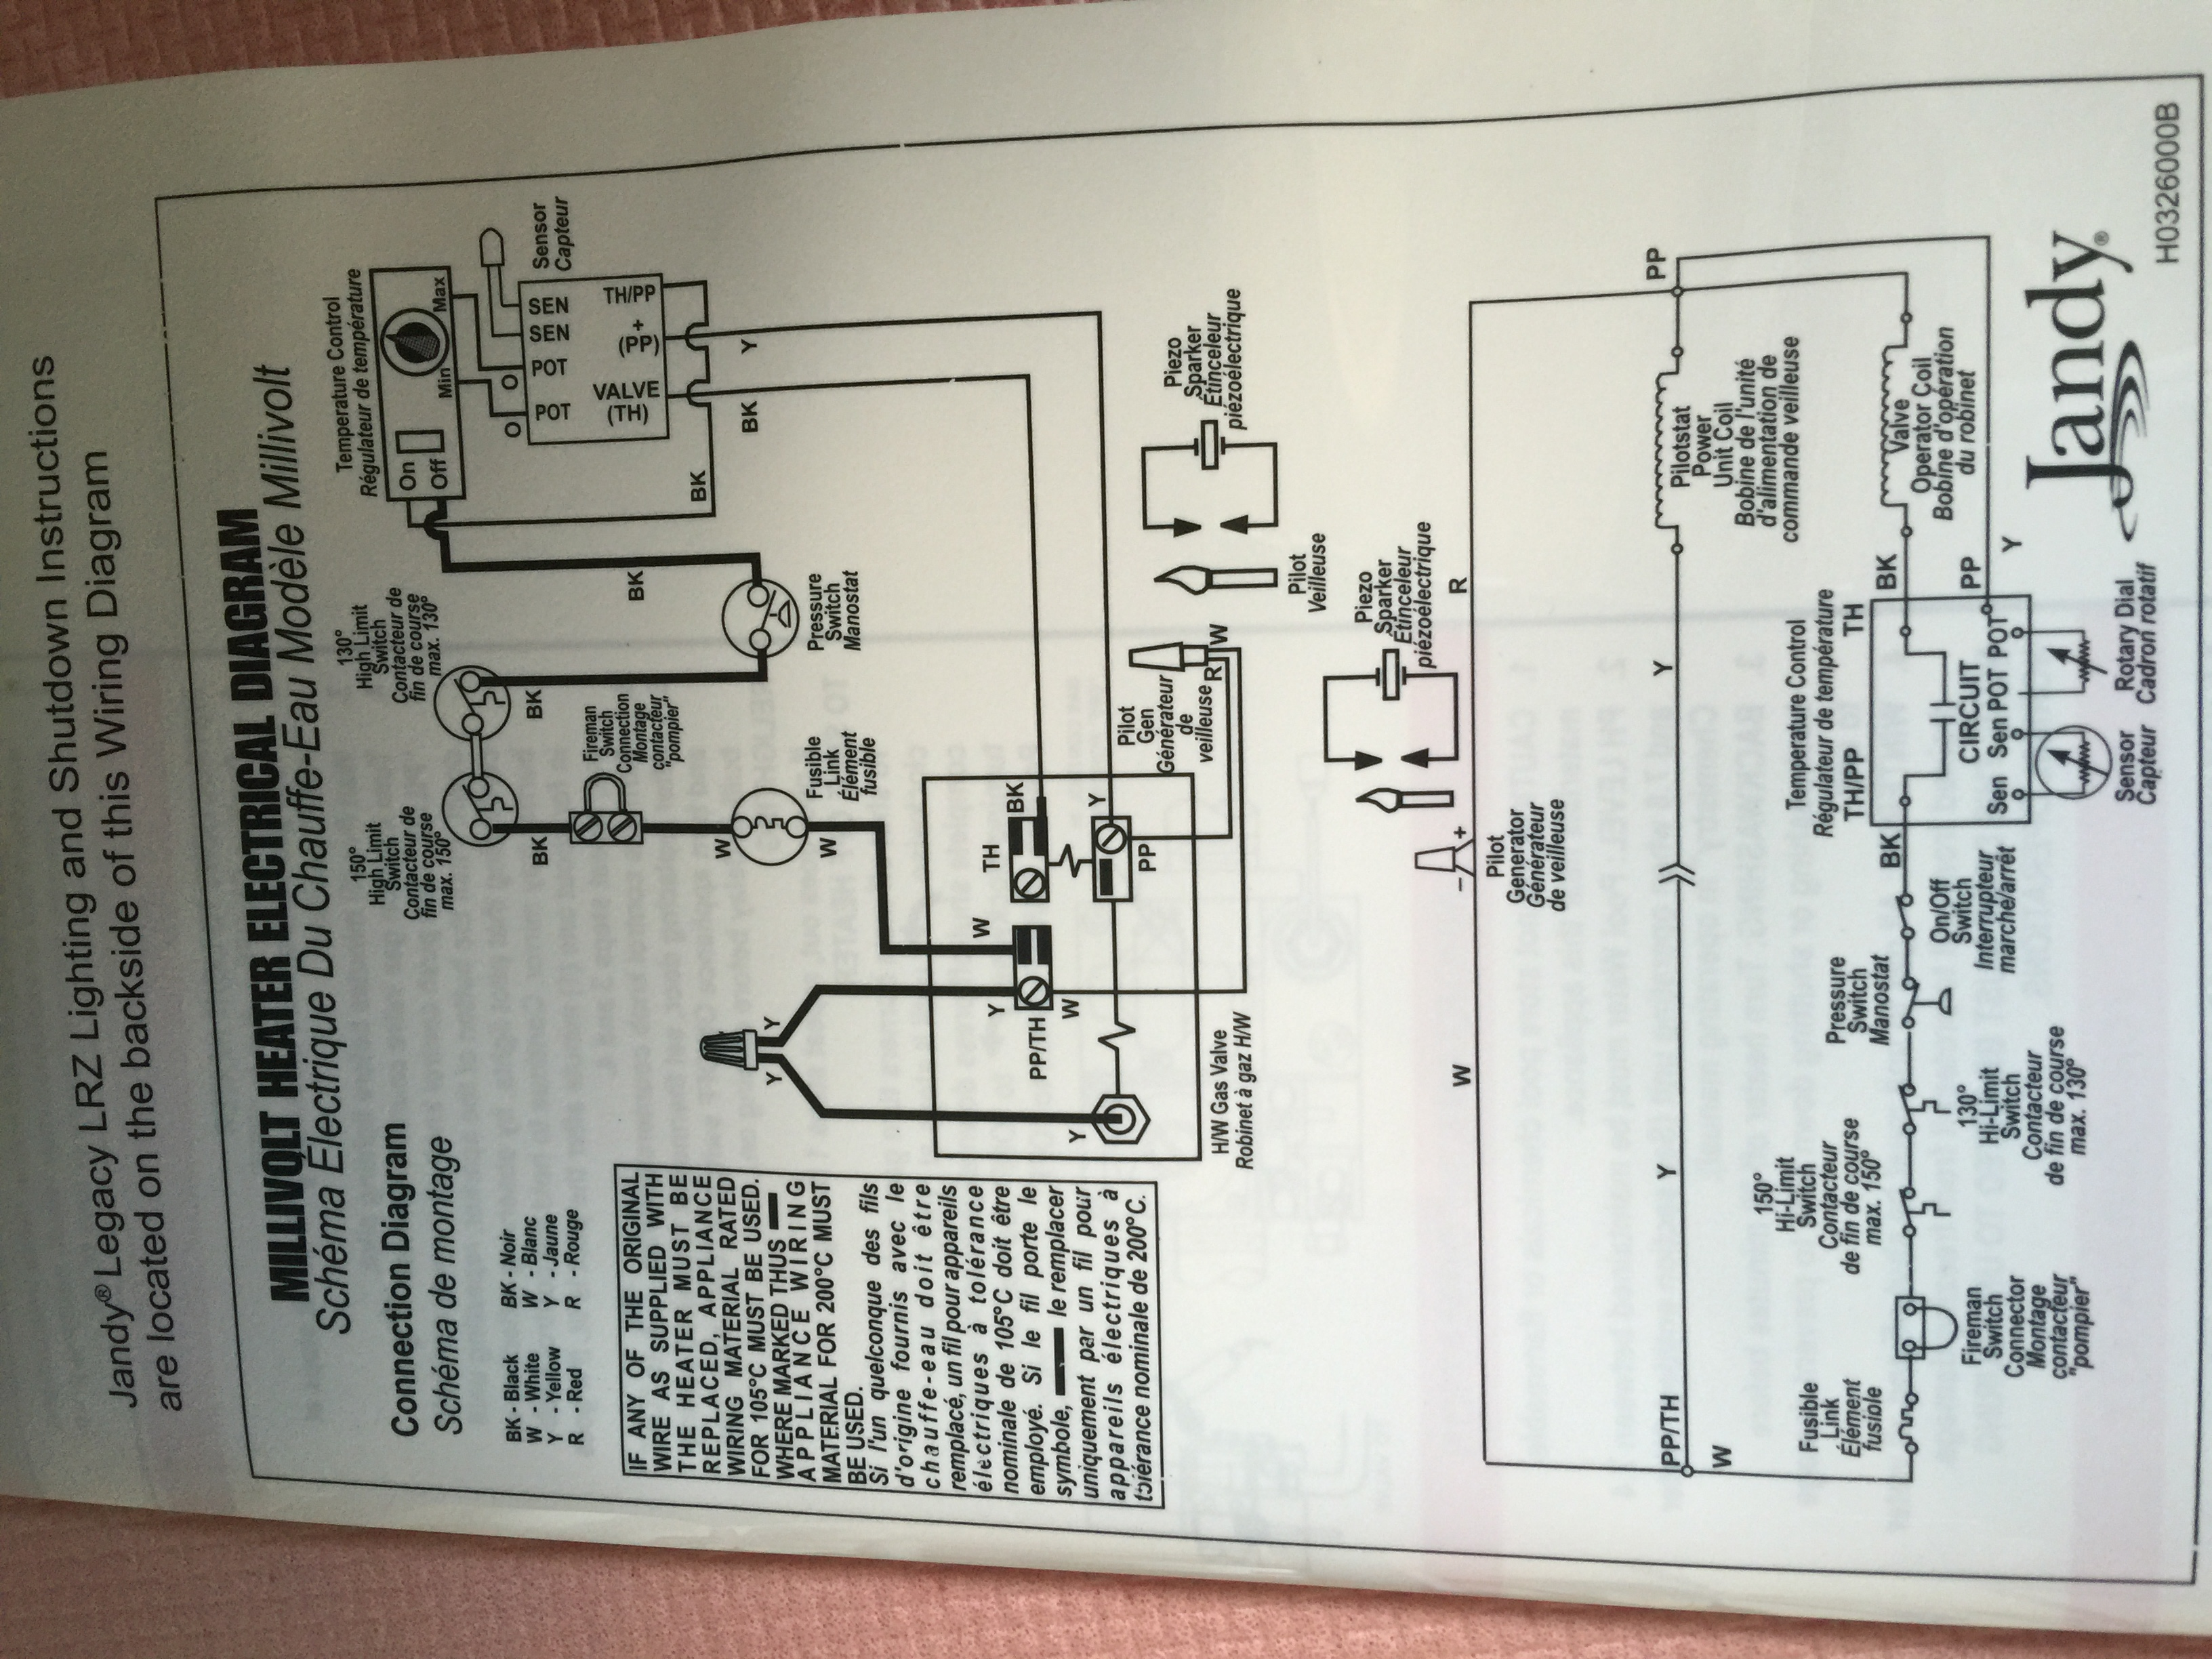 I have a Jandy lzrm pool heater that will start and heat the water Jandy Spa Heater Wiring Diagram on air handler wiring diagram, spa pump diagram, solar wiring diagram, spa water heater flow diagram, tankless water heater installation diagram, gas lighter wiring diagram, generator wiring diagram, spa heater hose, spa heater control panel, spa heater cover, spa heater installation, air conditioning wiring diagram, hot tub wiring diagram, gas pool heater installation diagram, pool parts diagram, fireplace wiring diagram, spa heater assembly, spa configuration diagram, heating wiring diagram,